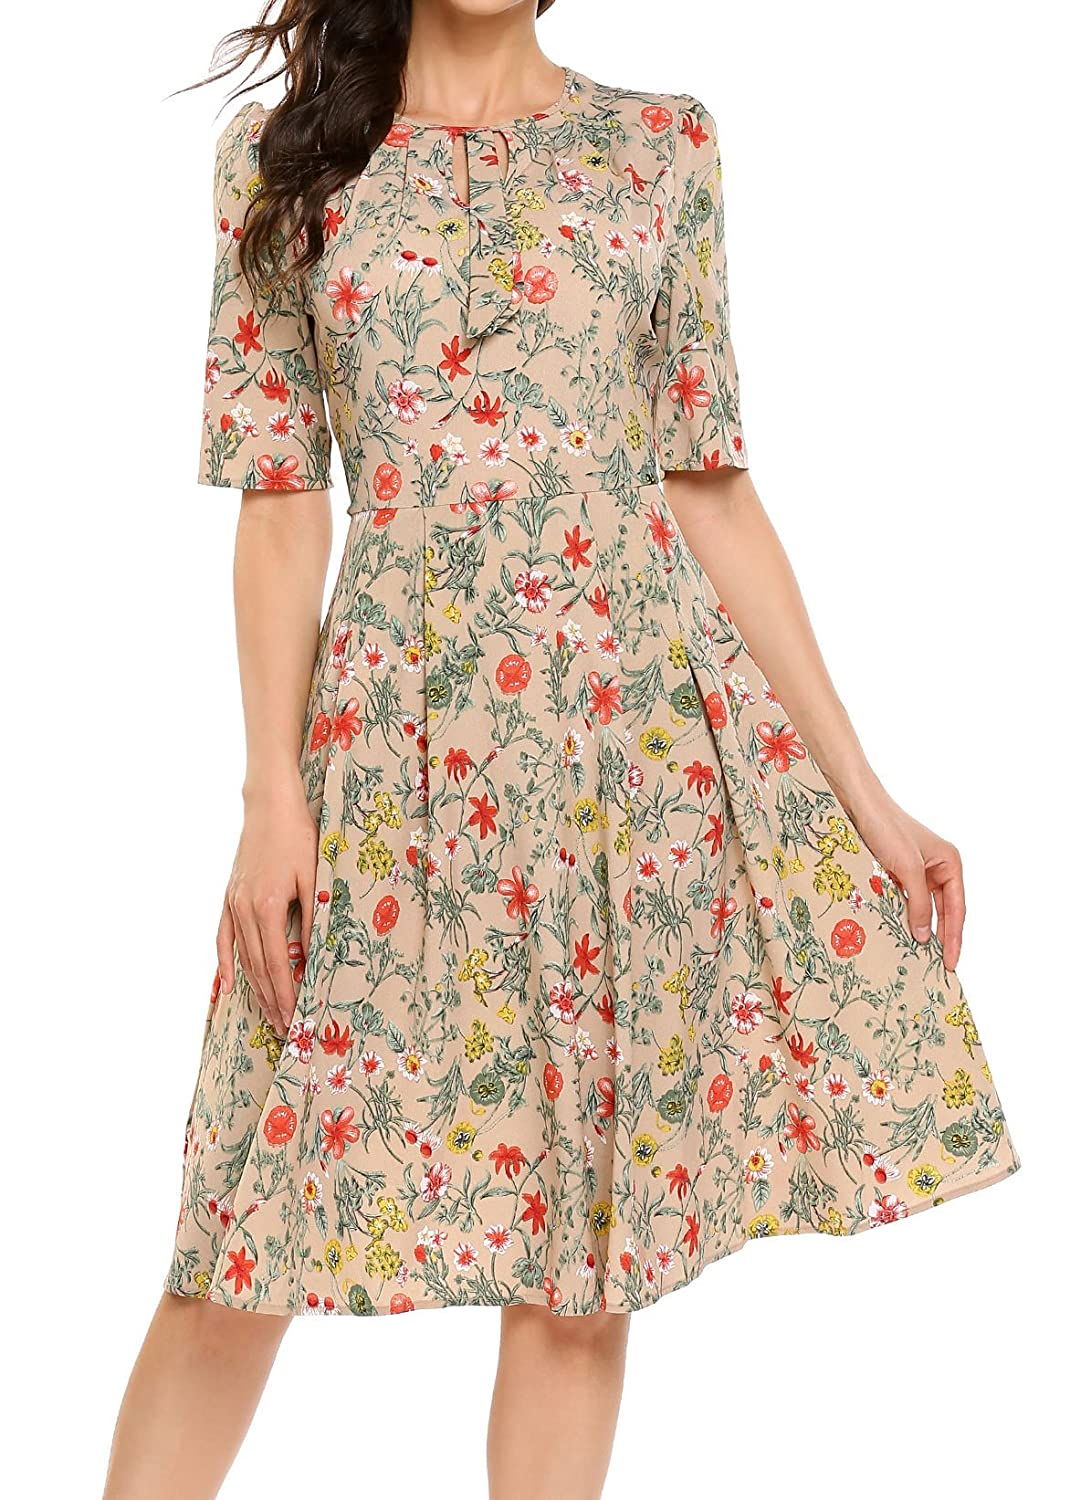 Swing Dance Clothing You Can Dance In Casual Short Sleeve Floral Printed Fit and Flare Party Dress ACEVOG Womens $30.79 AT vintagedancer.com